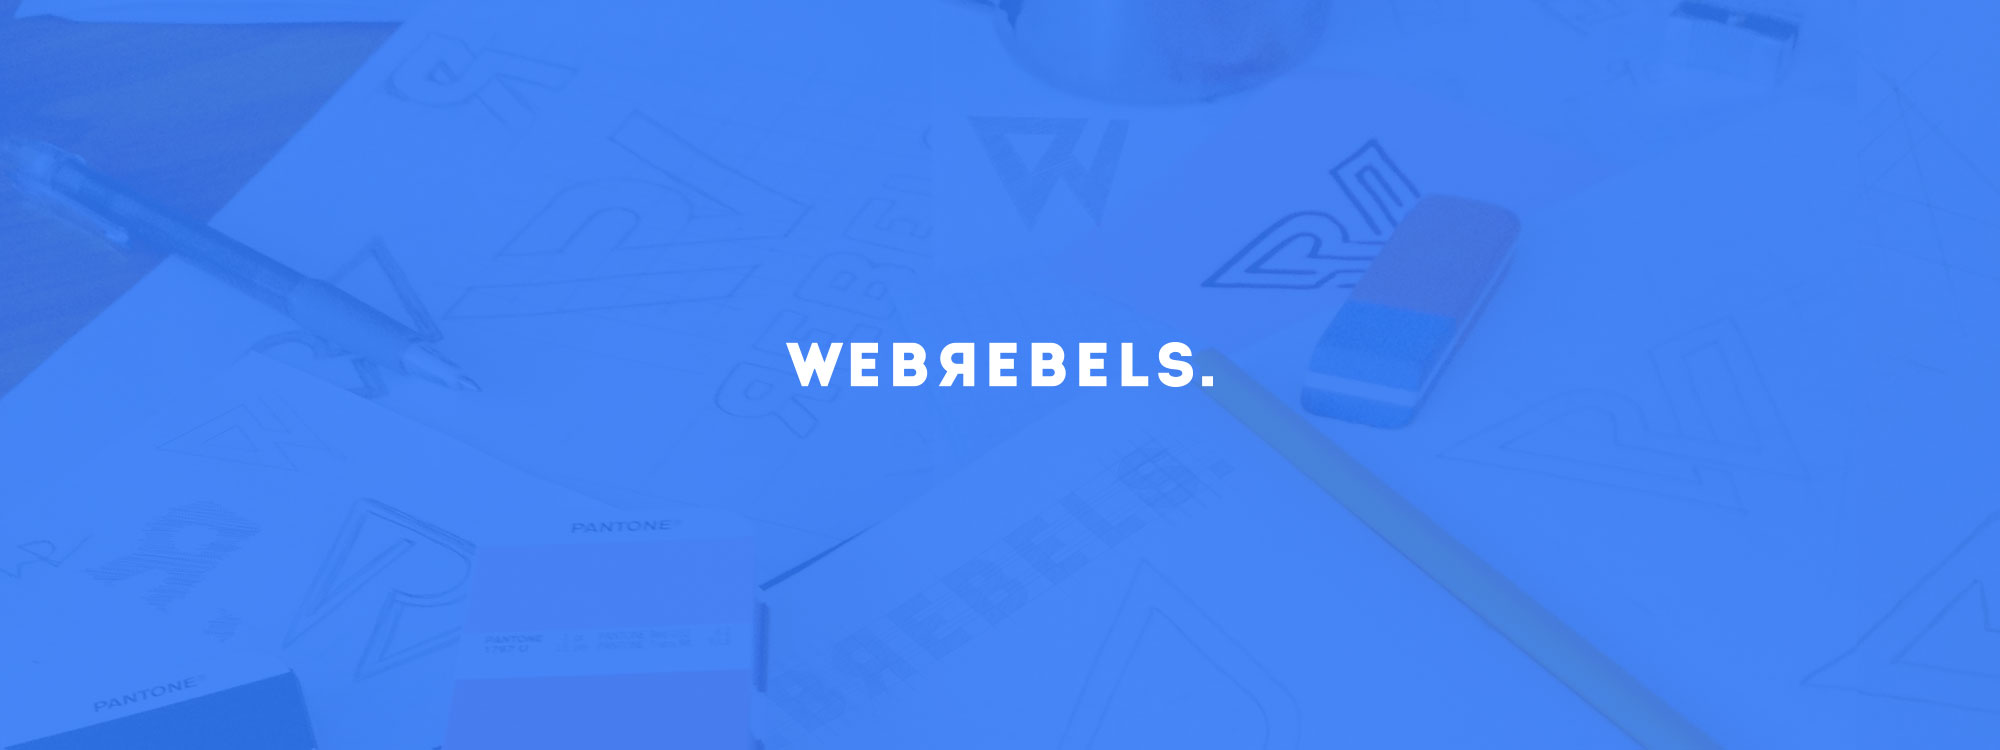 Header-Webrebels-02